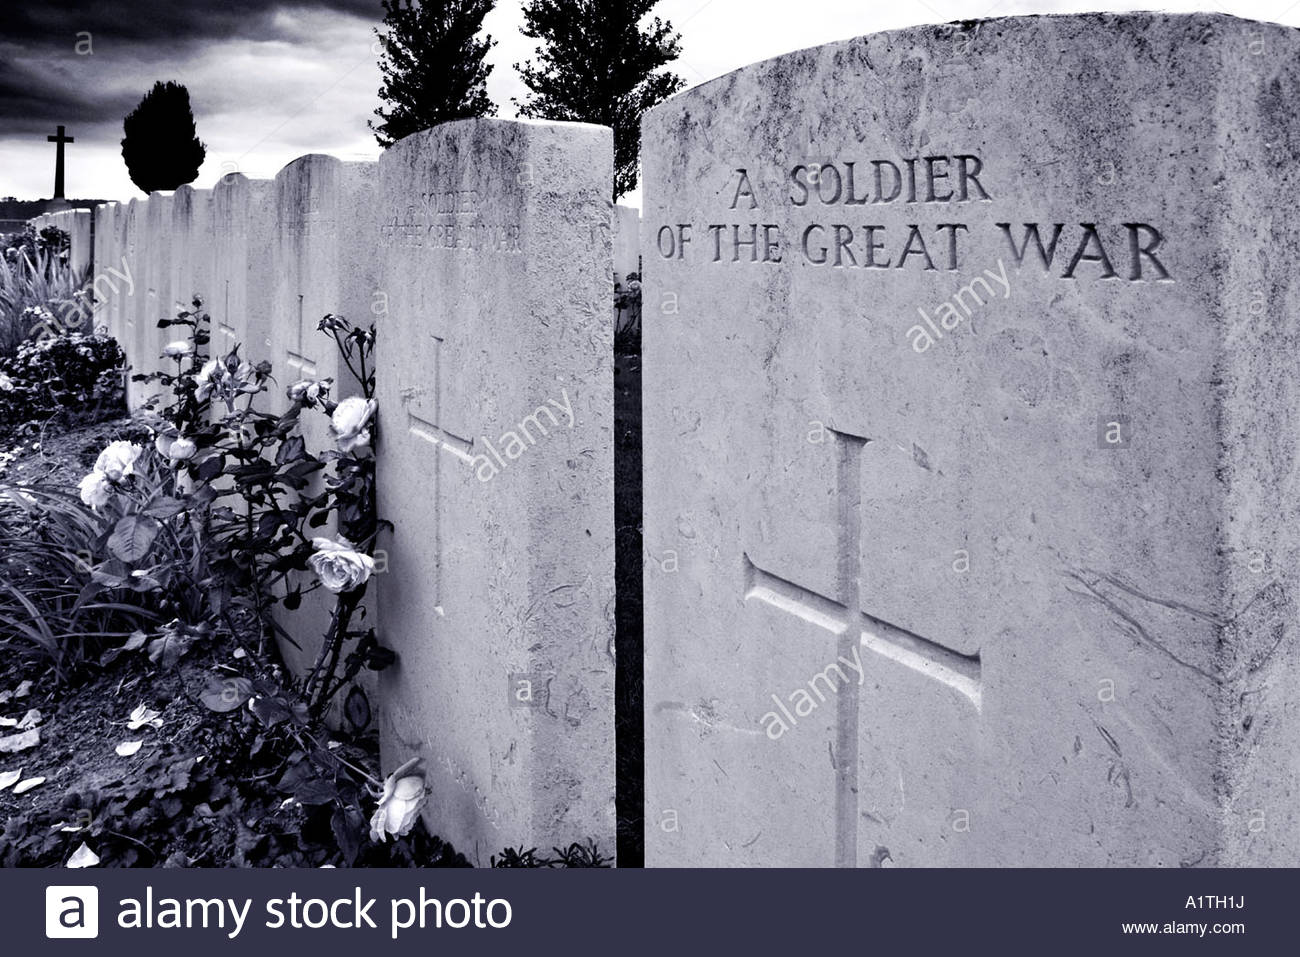 roses-growing-by-a-grave-marked-a-soldier-of-the-great-war-A1TH1J.jpg